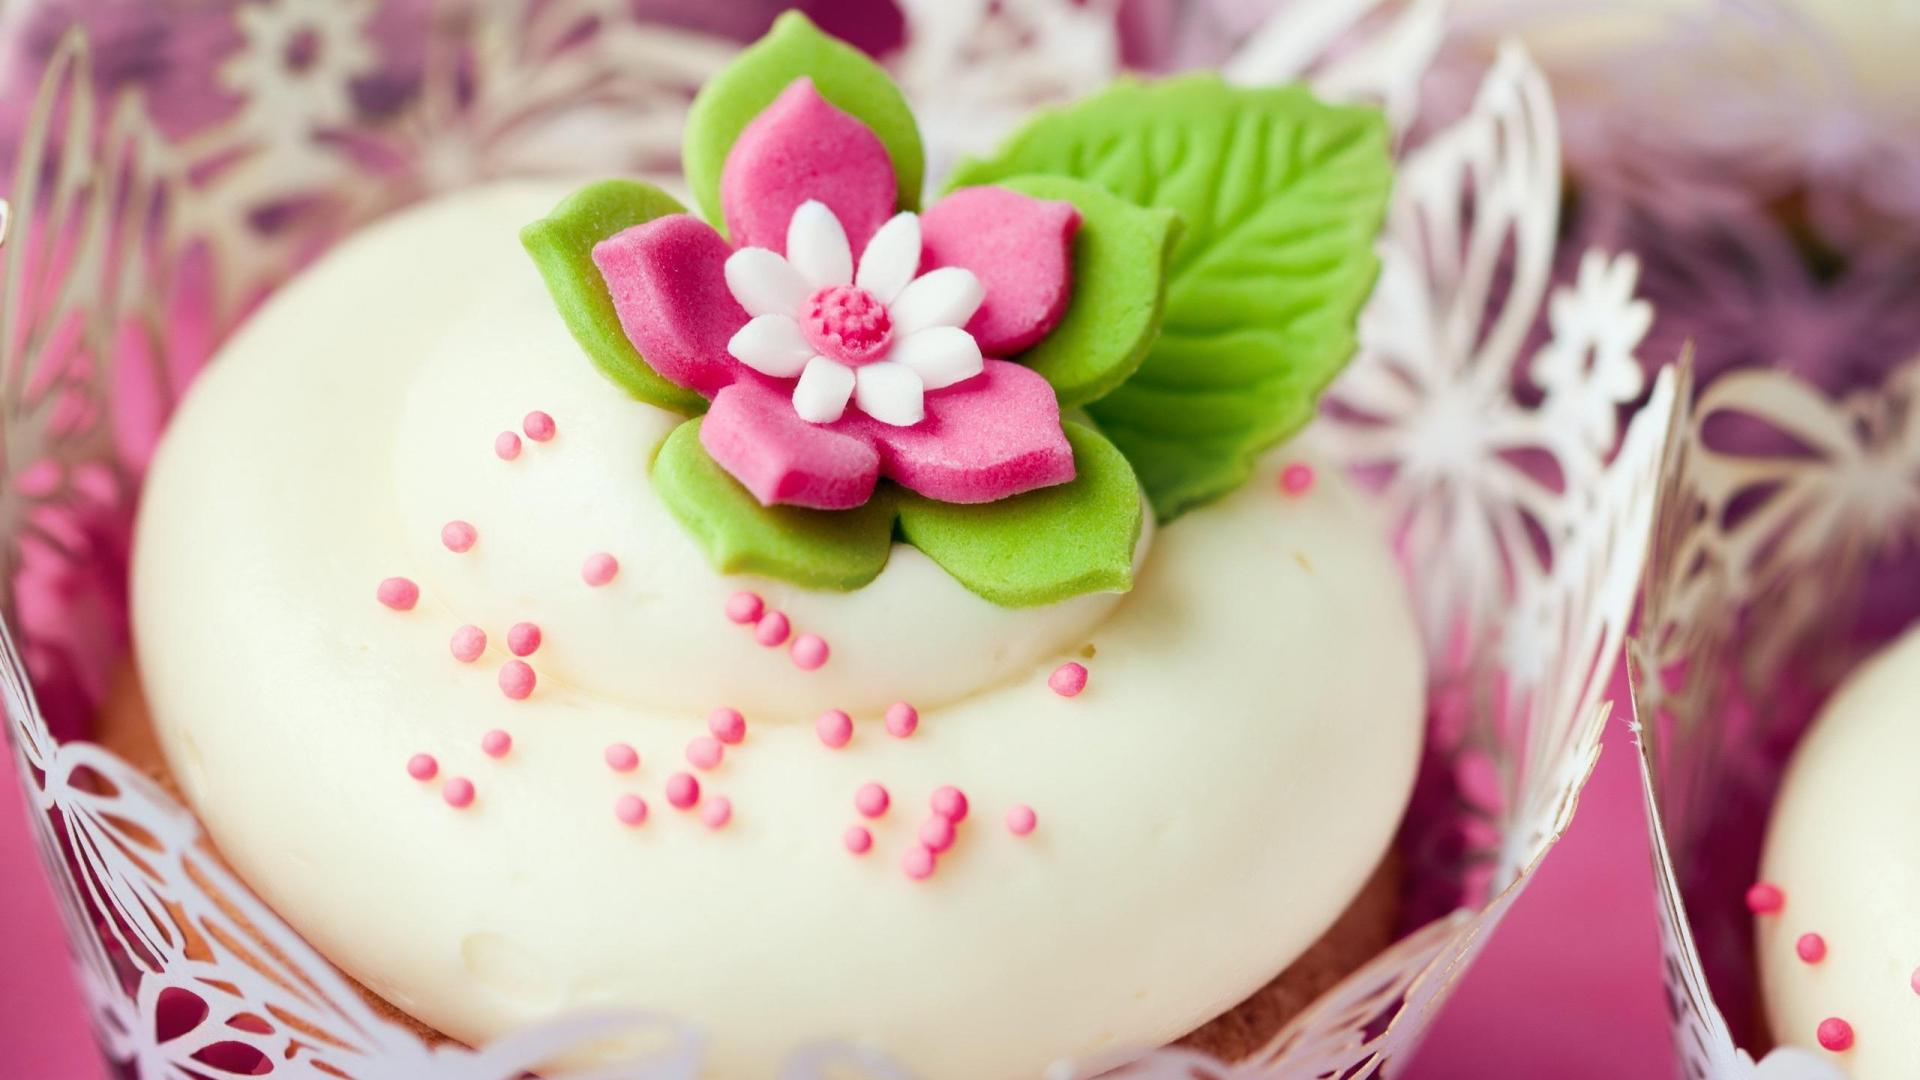 Cute Cake Images Hd : Cake Wallpapers Best Wallpapers